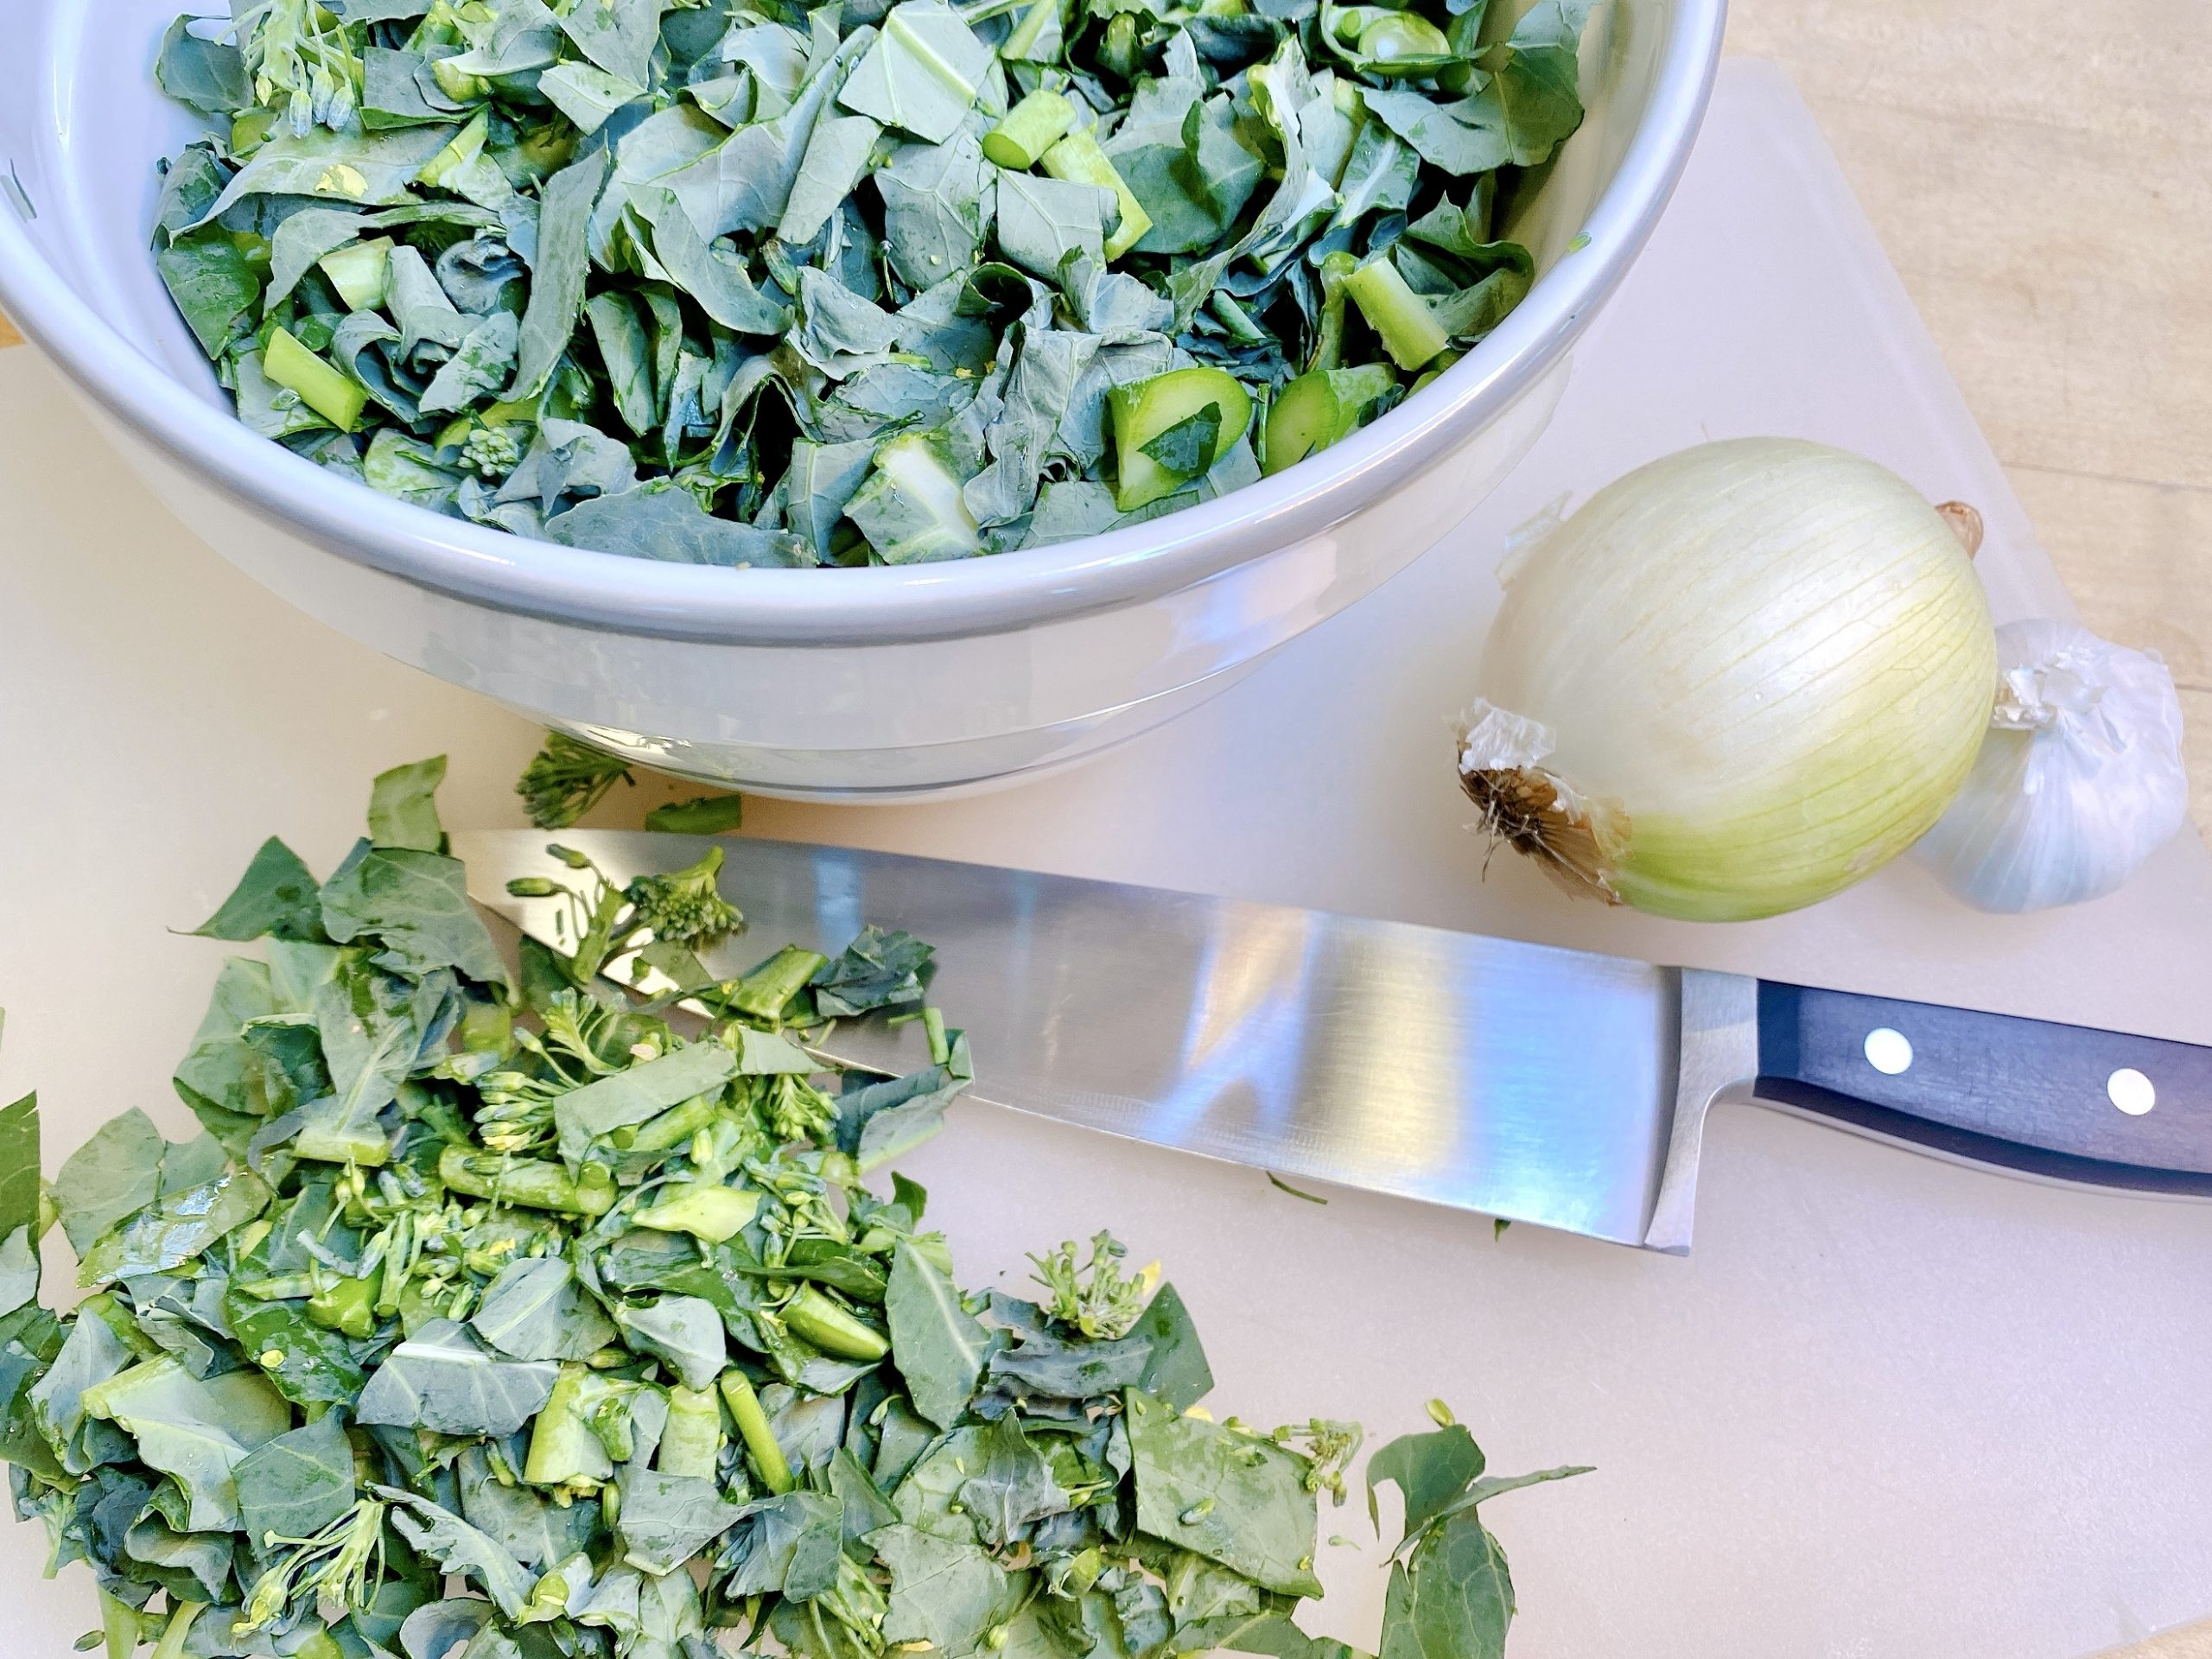 chopped broccoli rabe in bowl and on cutting board with knife